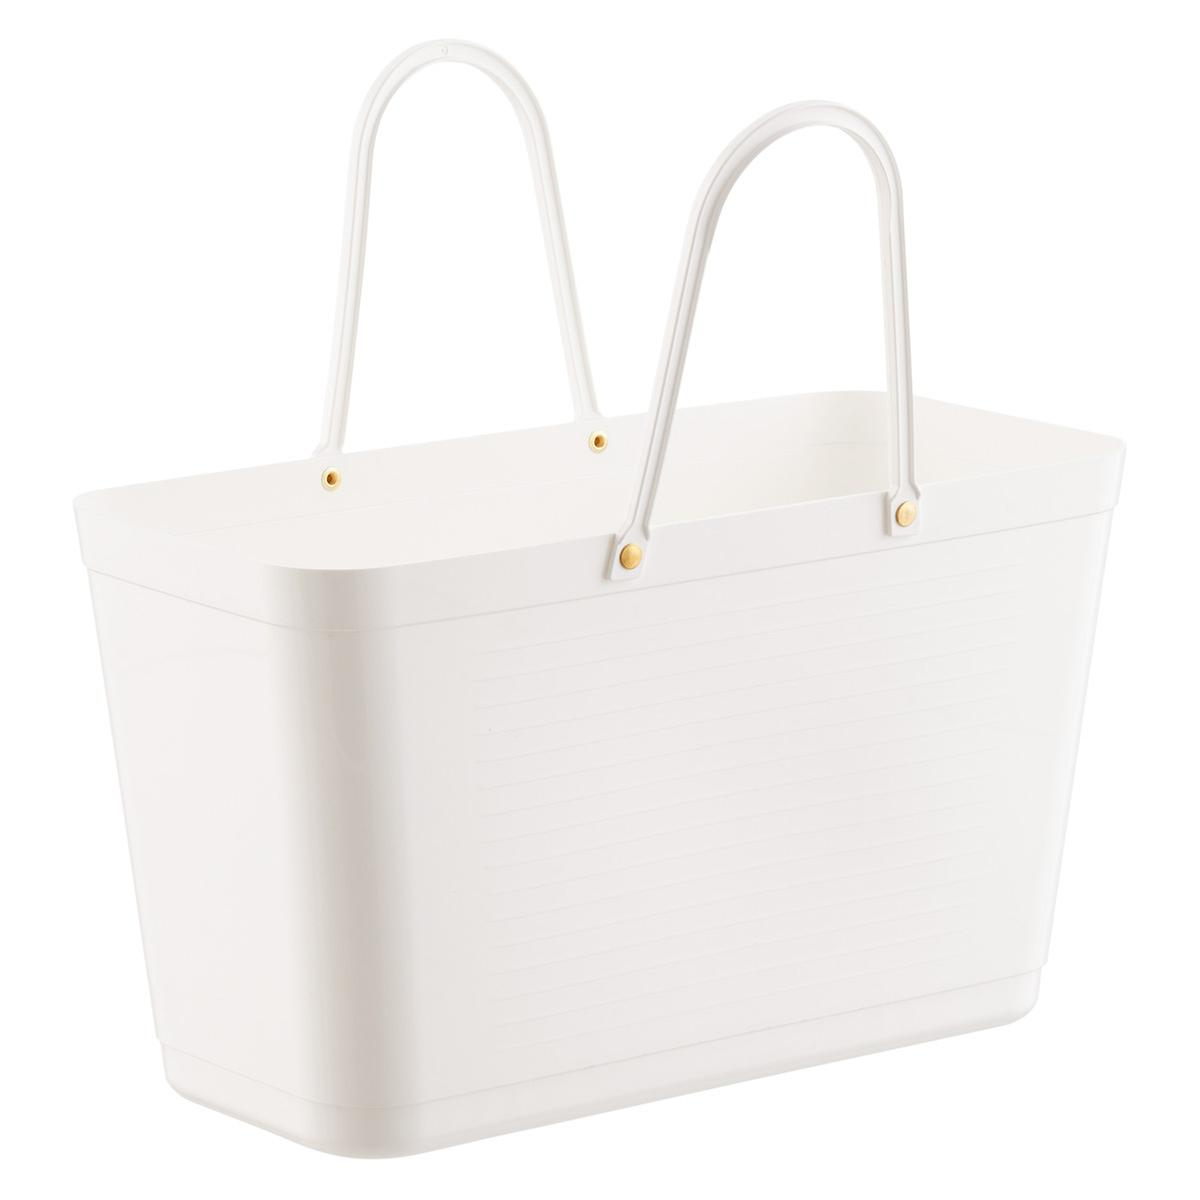 White Hinza Shopping Tote